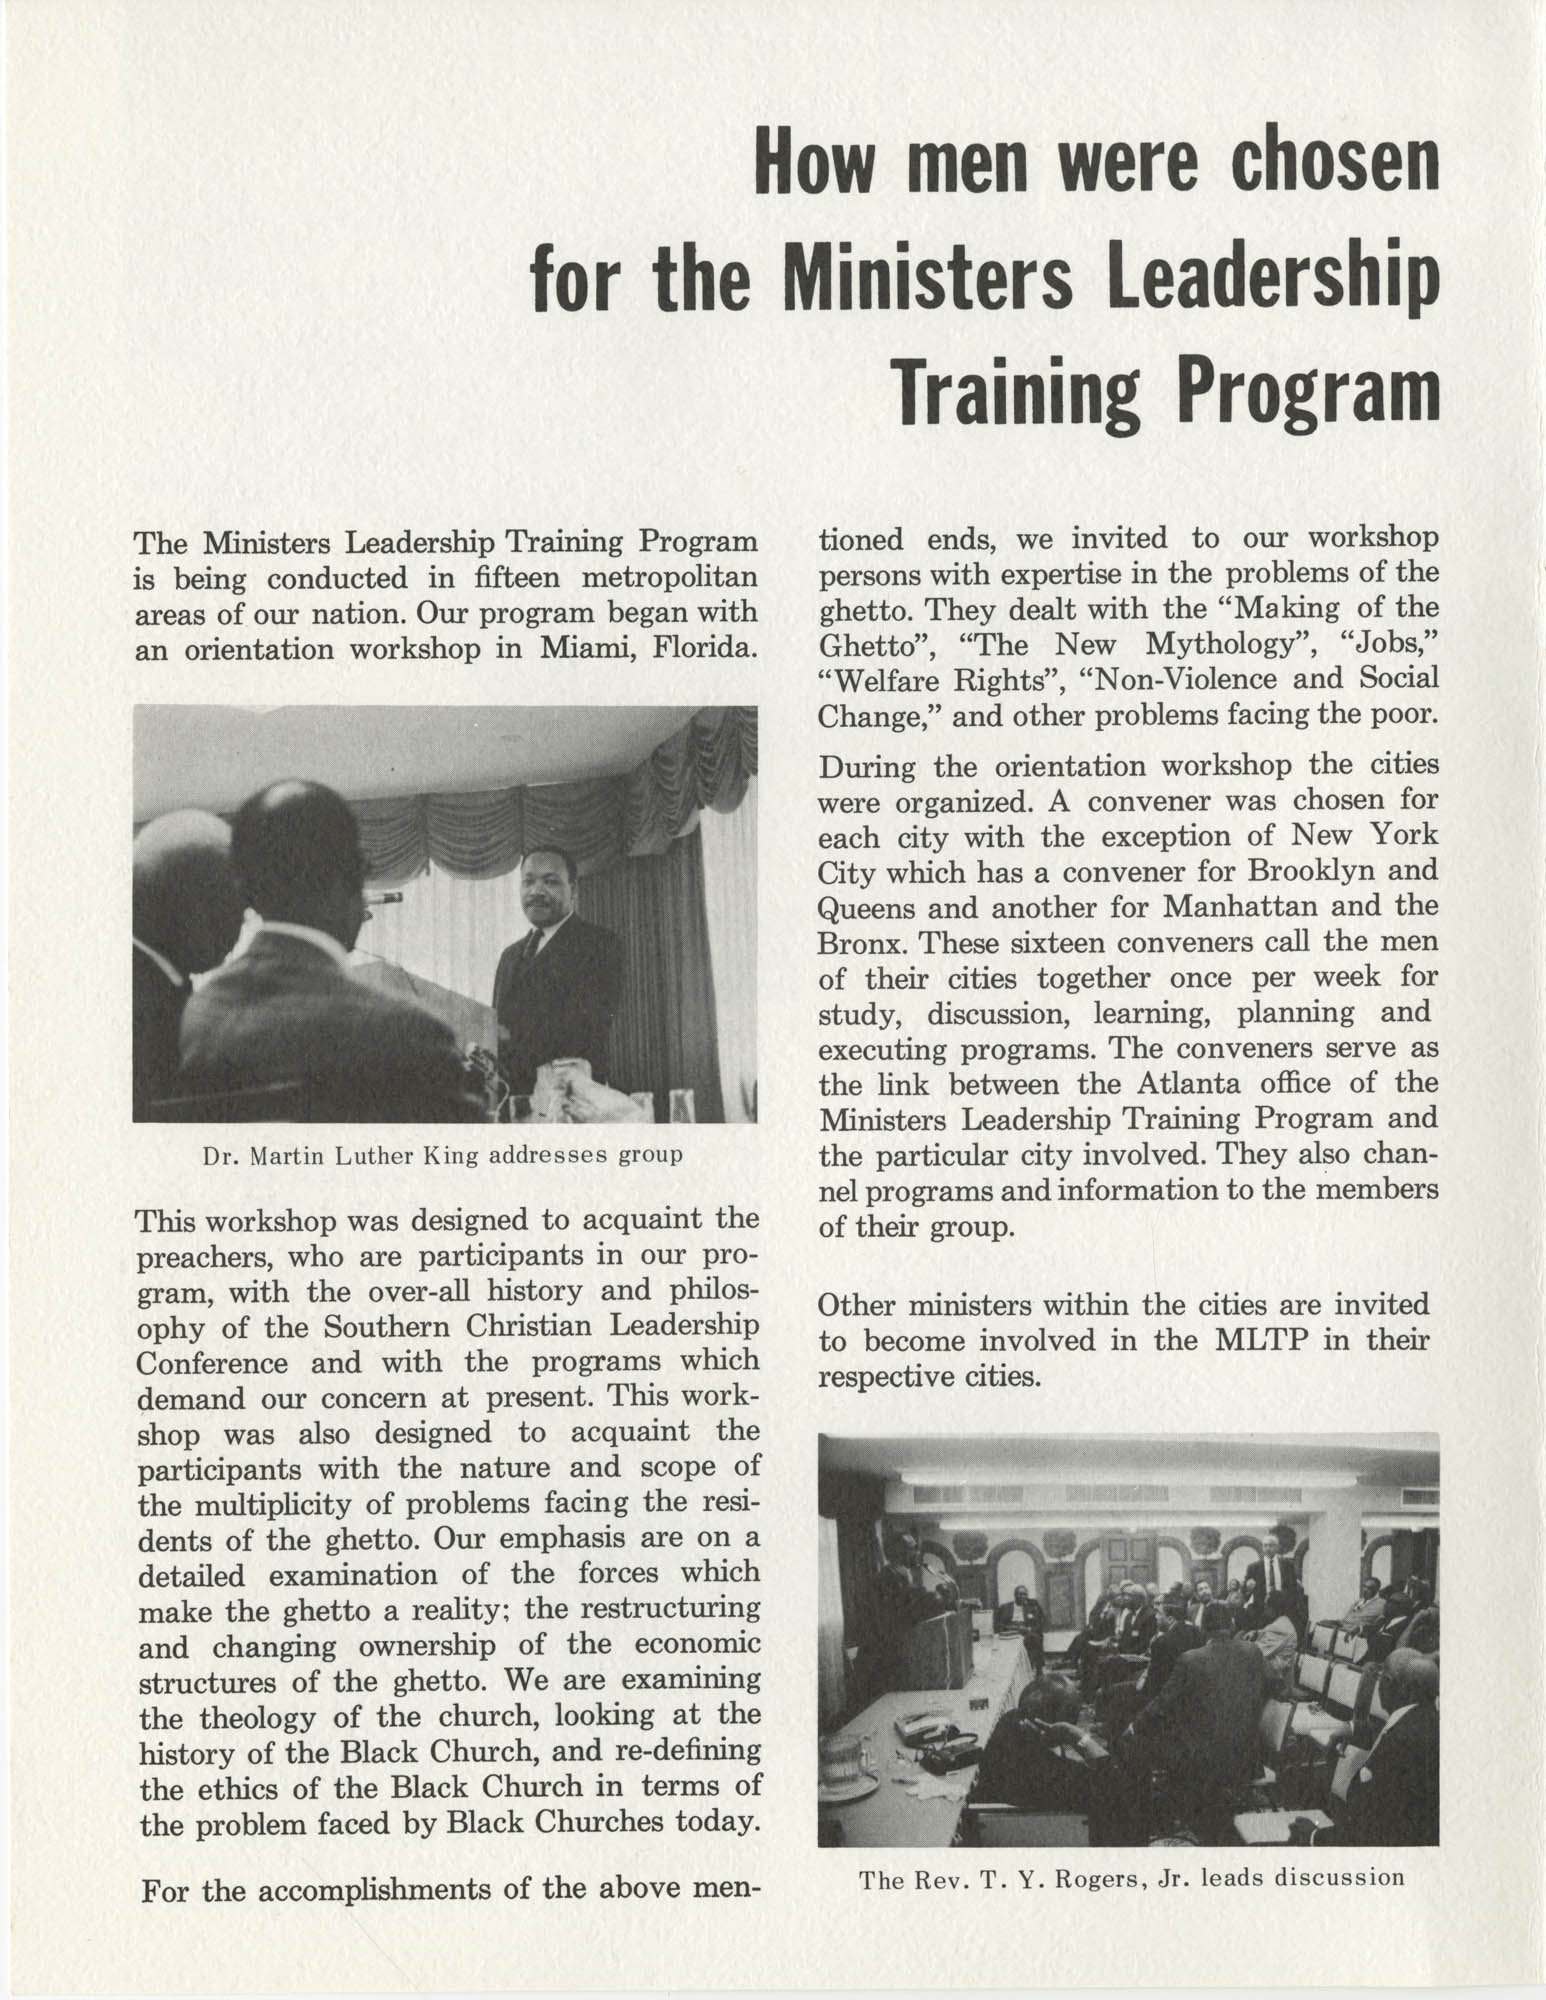 Ministers Leadership Training Program, Page 3